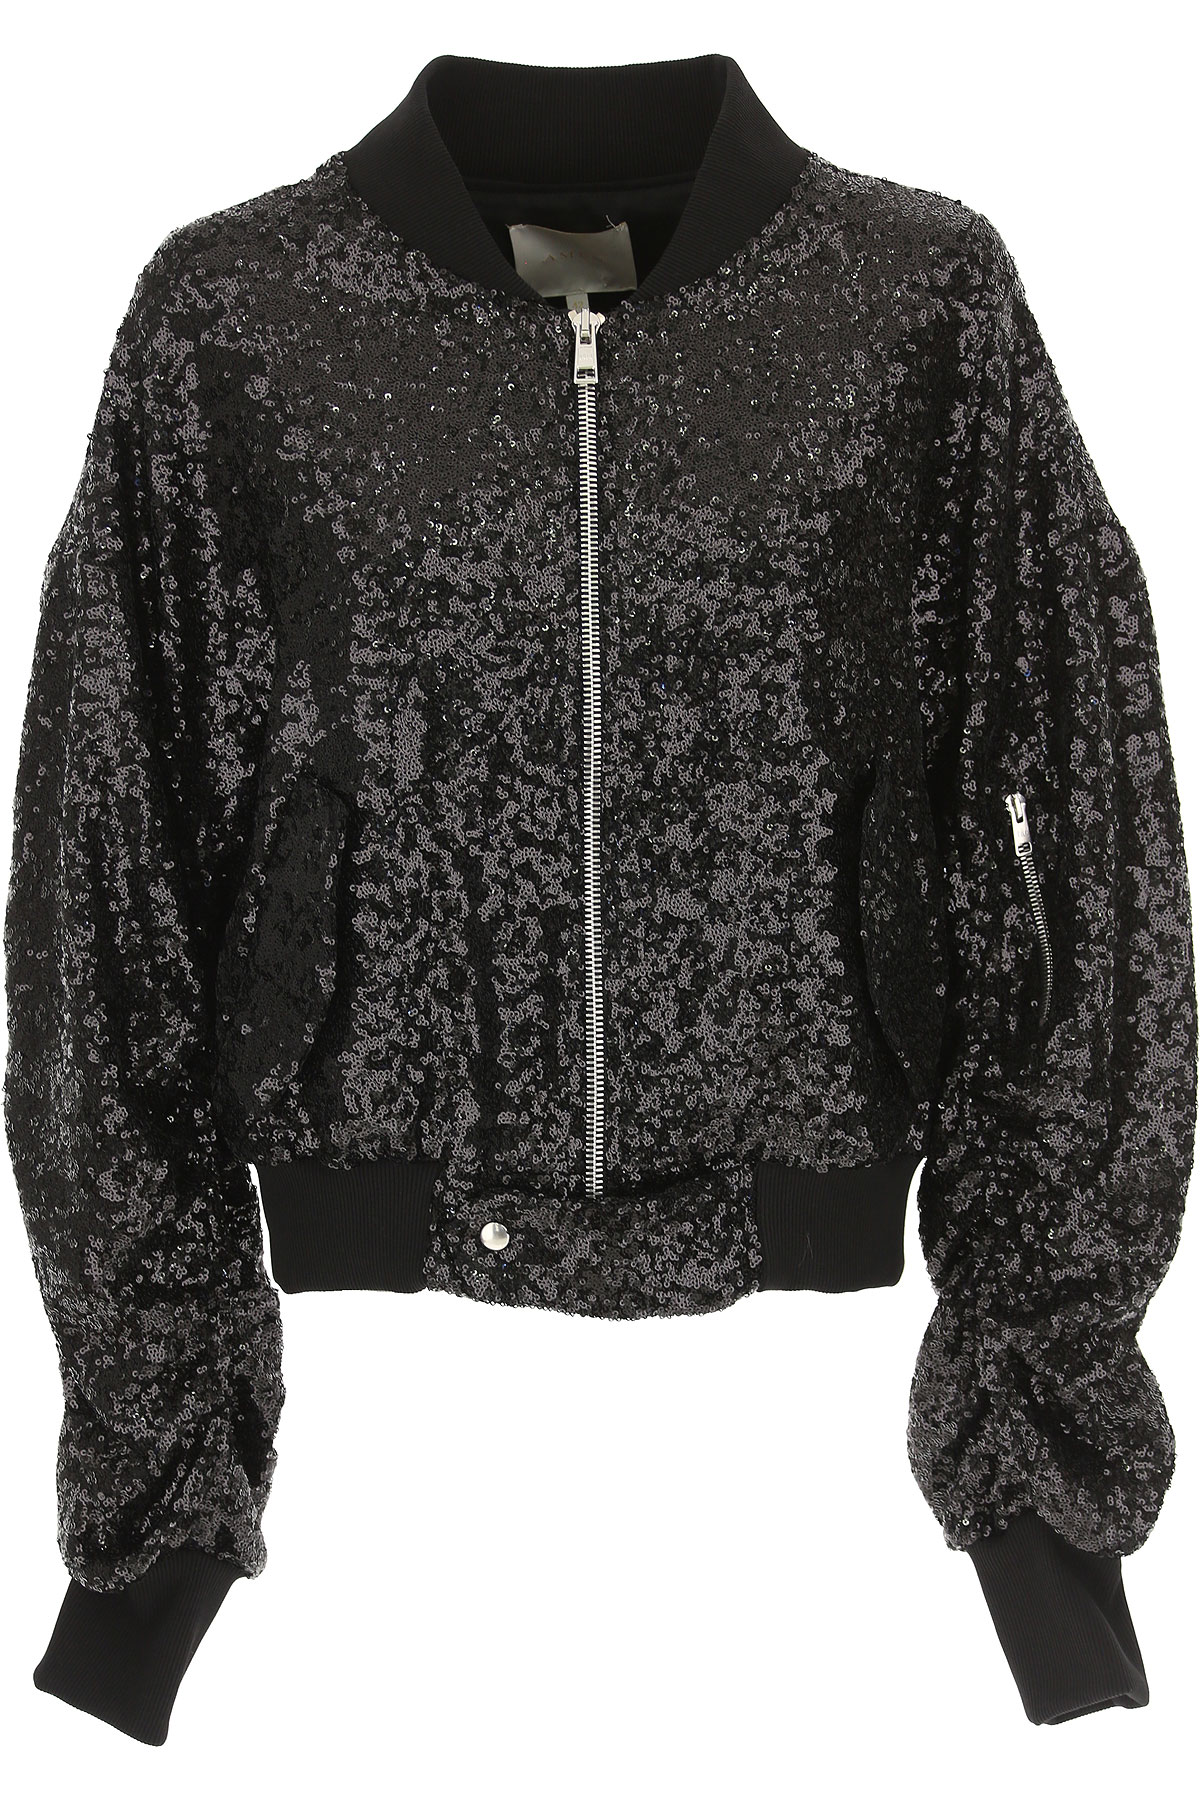 Image of Amen Jacket for Women, Black, polyester, 2017, 4 6